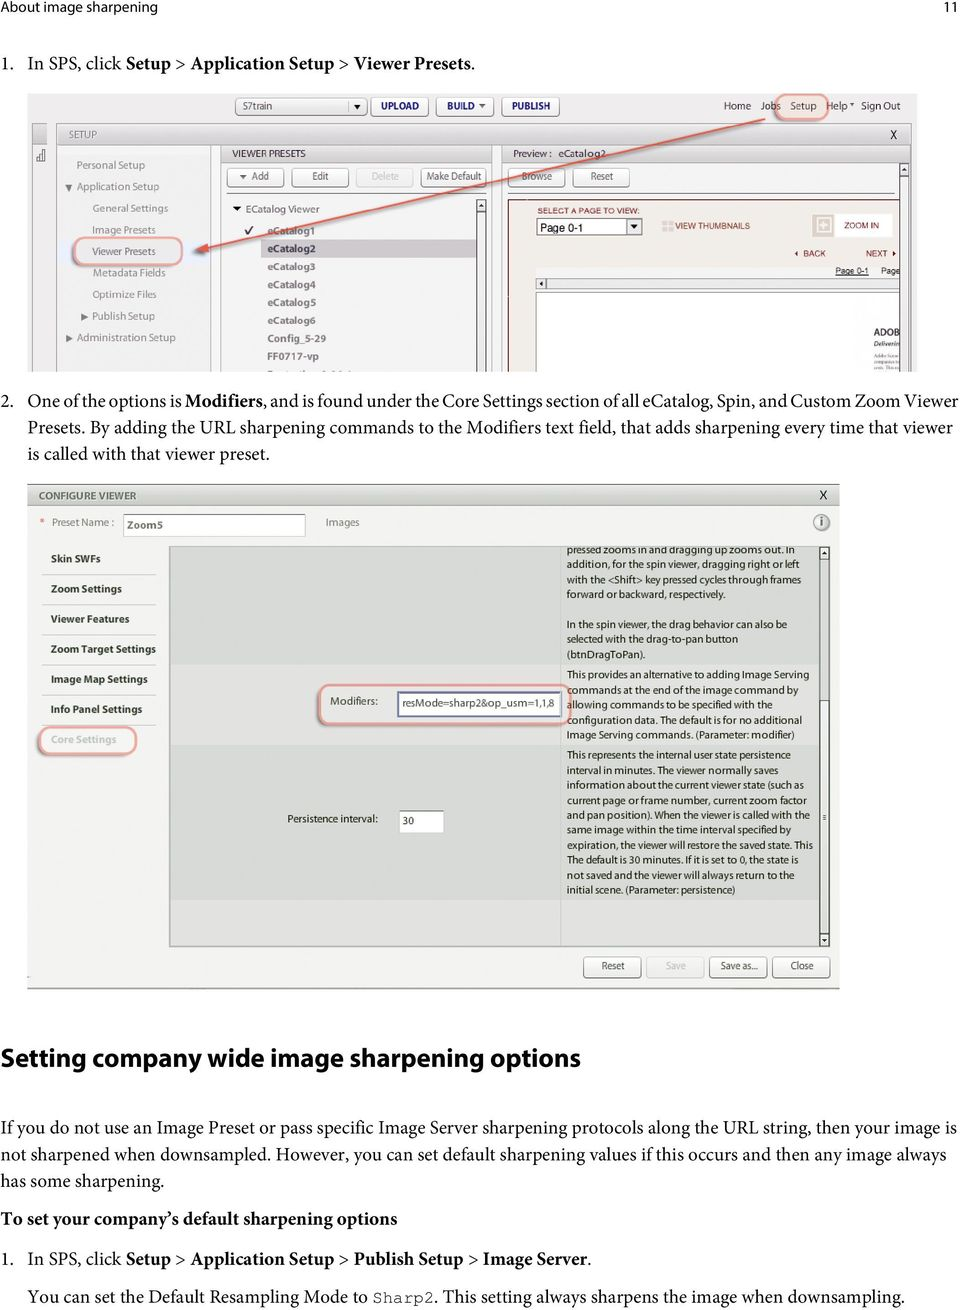 Setting company wide image sharpening options If you do not use an Image Preset or pass specific Image Server sharpening protocols along the URL string, then your image is not sharpened when